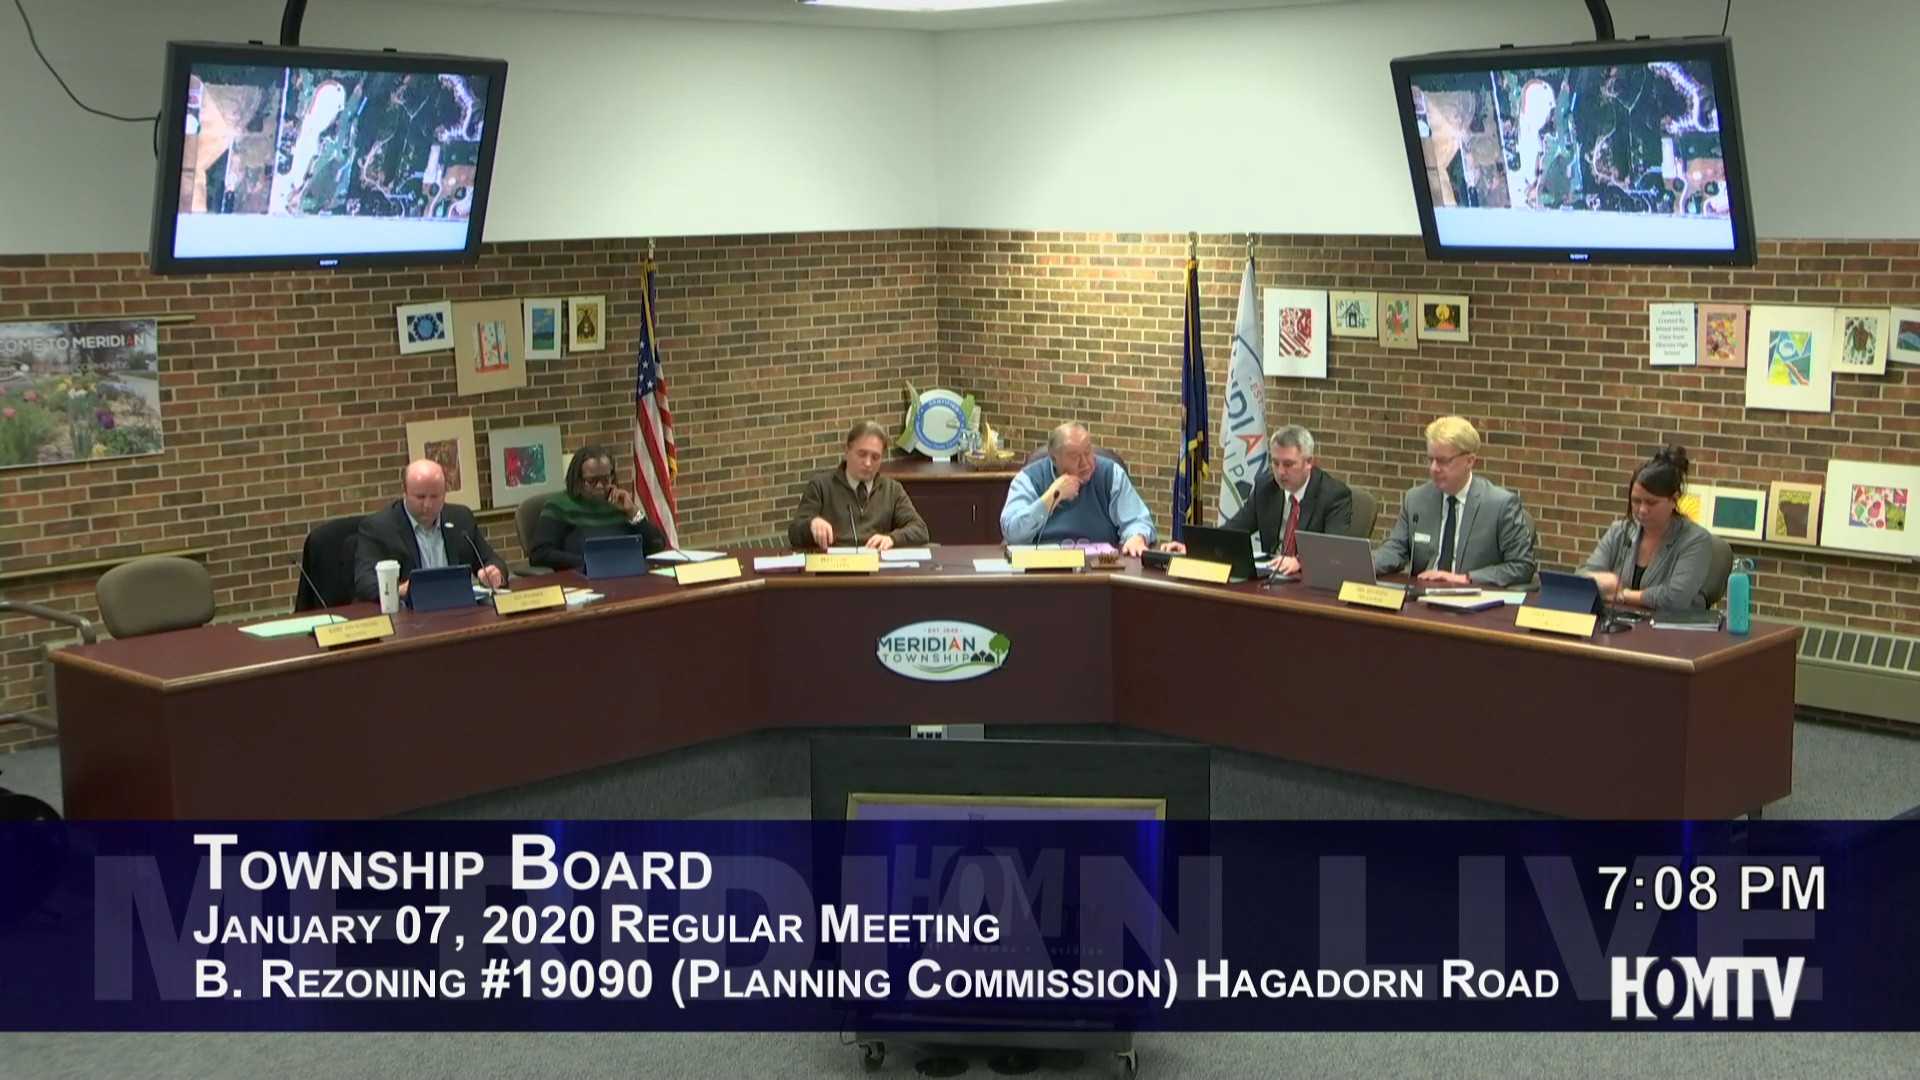 Township Board Discusses Residential Property Requests Along Hagadorn Road